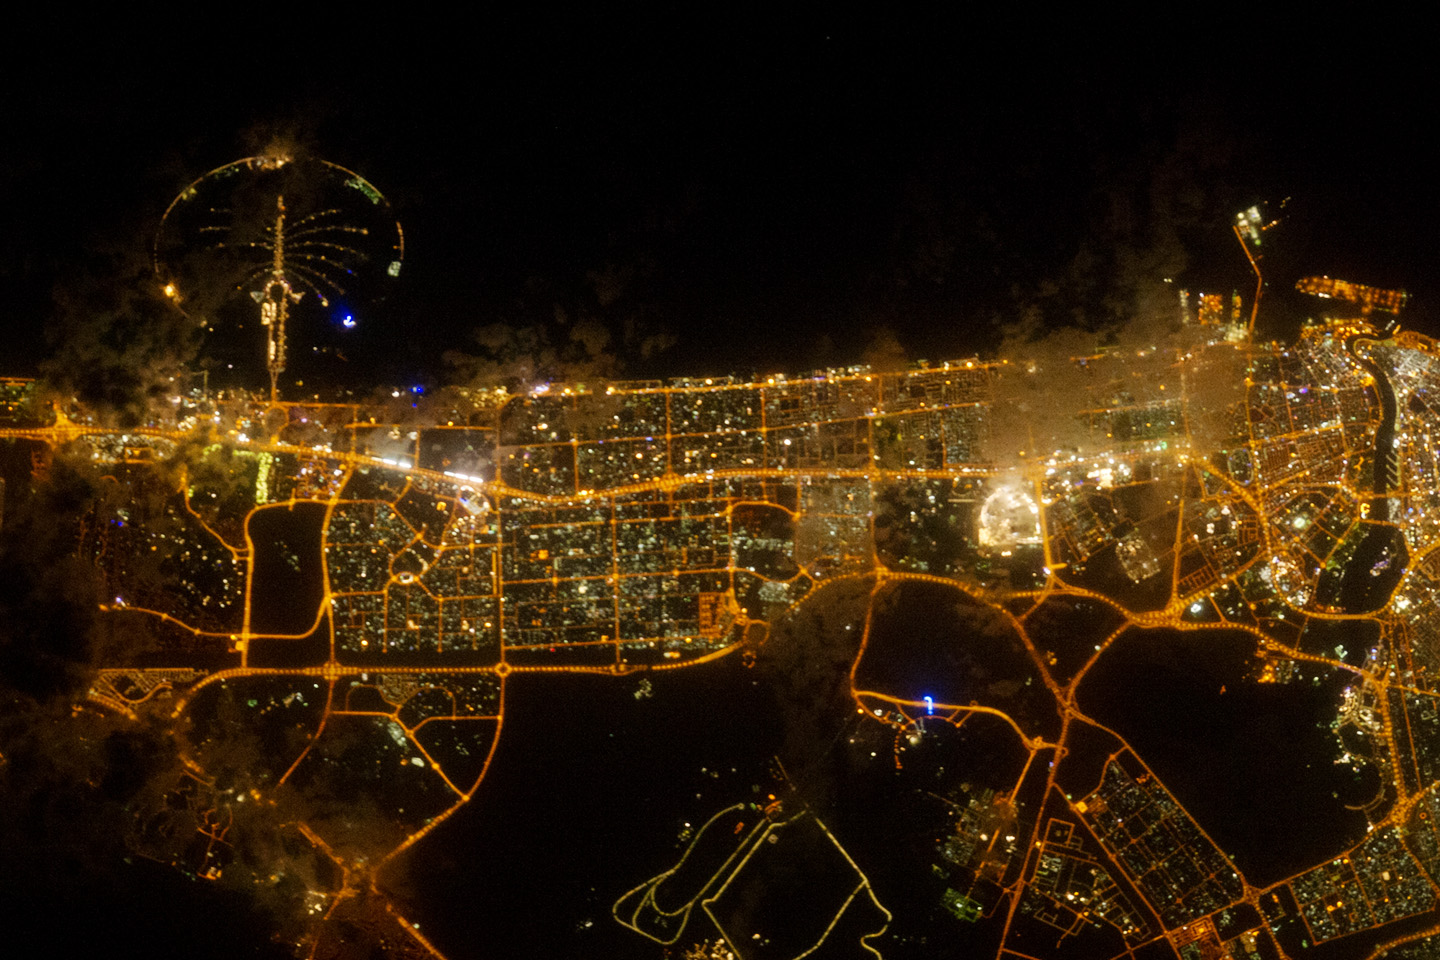 Today's Image of the Day comes from the NASA Earth Observatory and features a look at the lights of the city of Dubai at night.